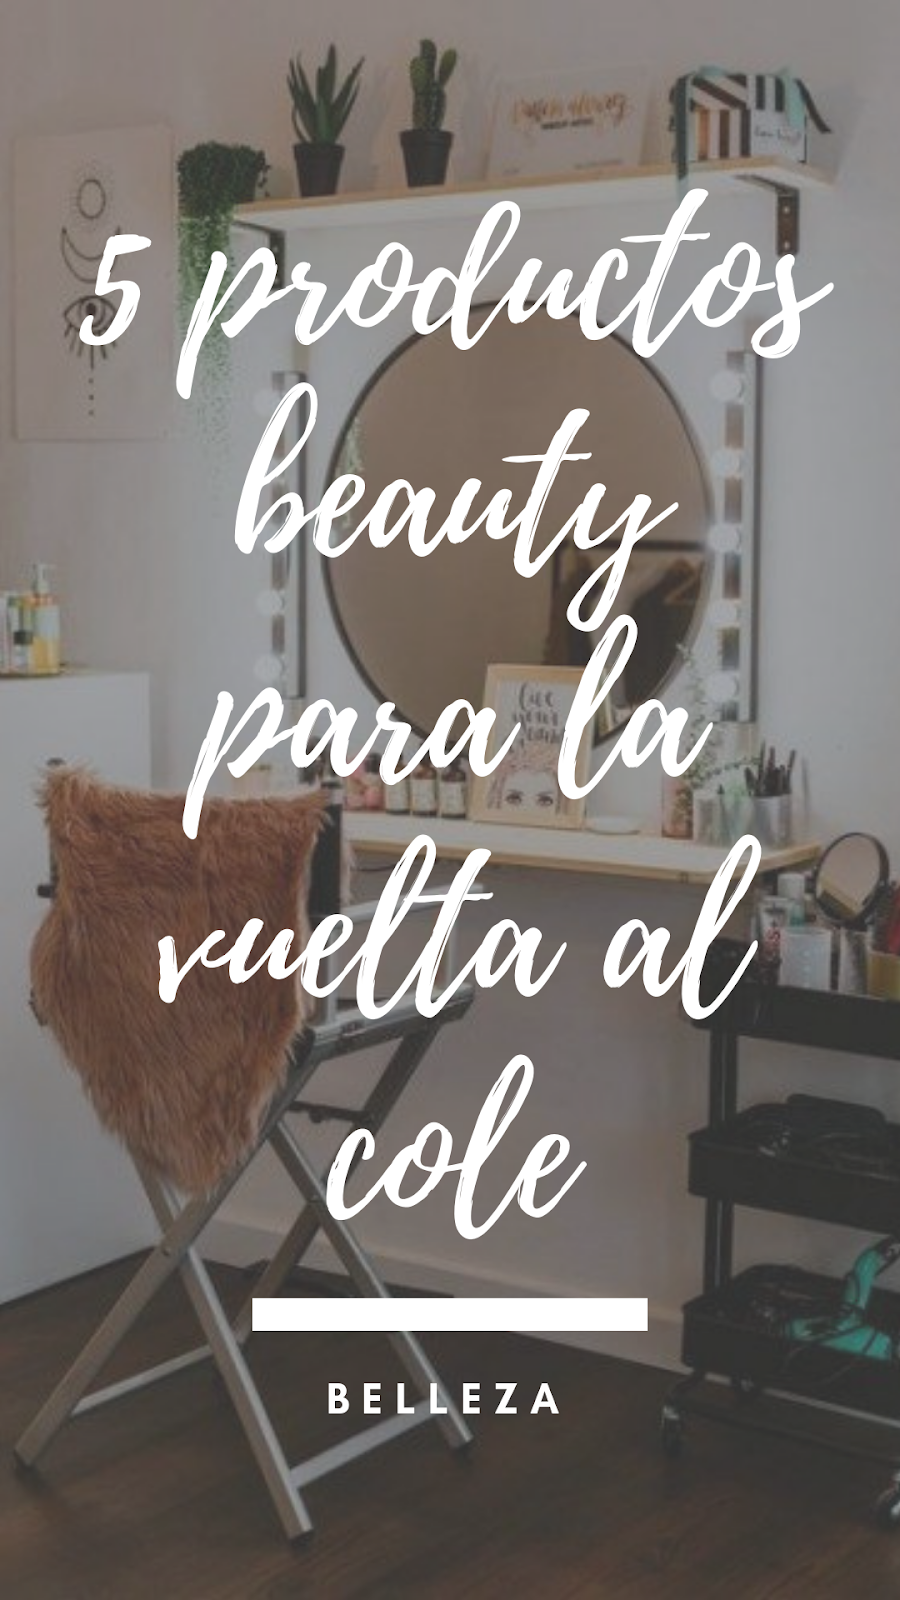 productos-beauty-vuelta-al-cole